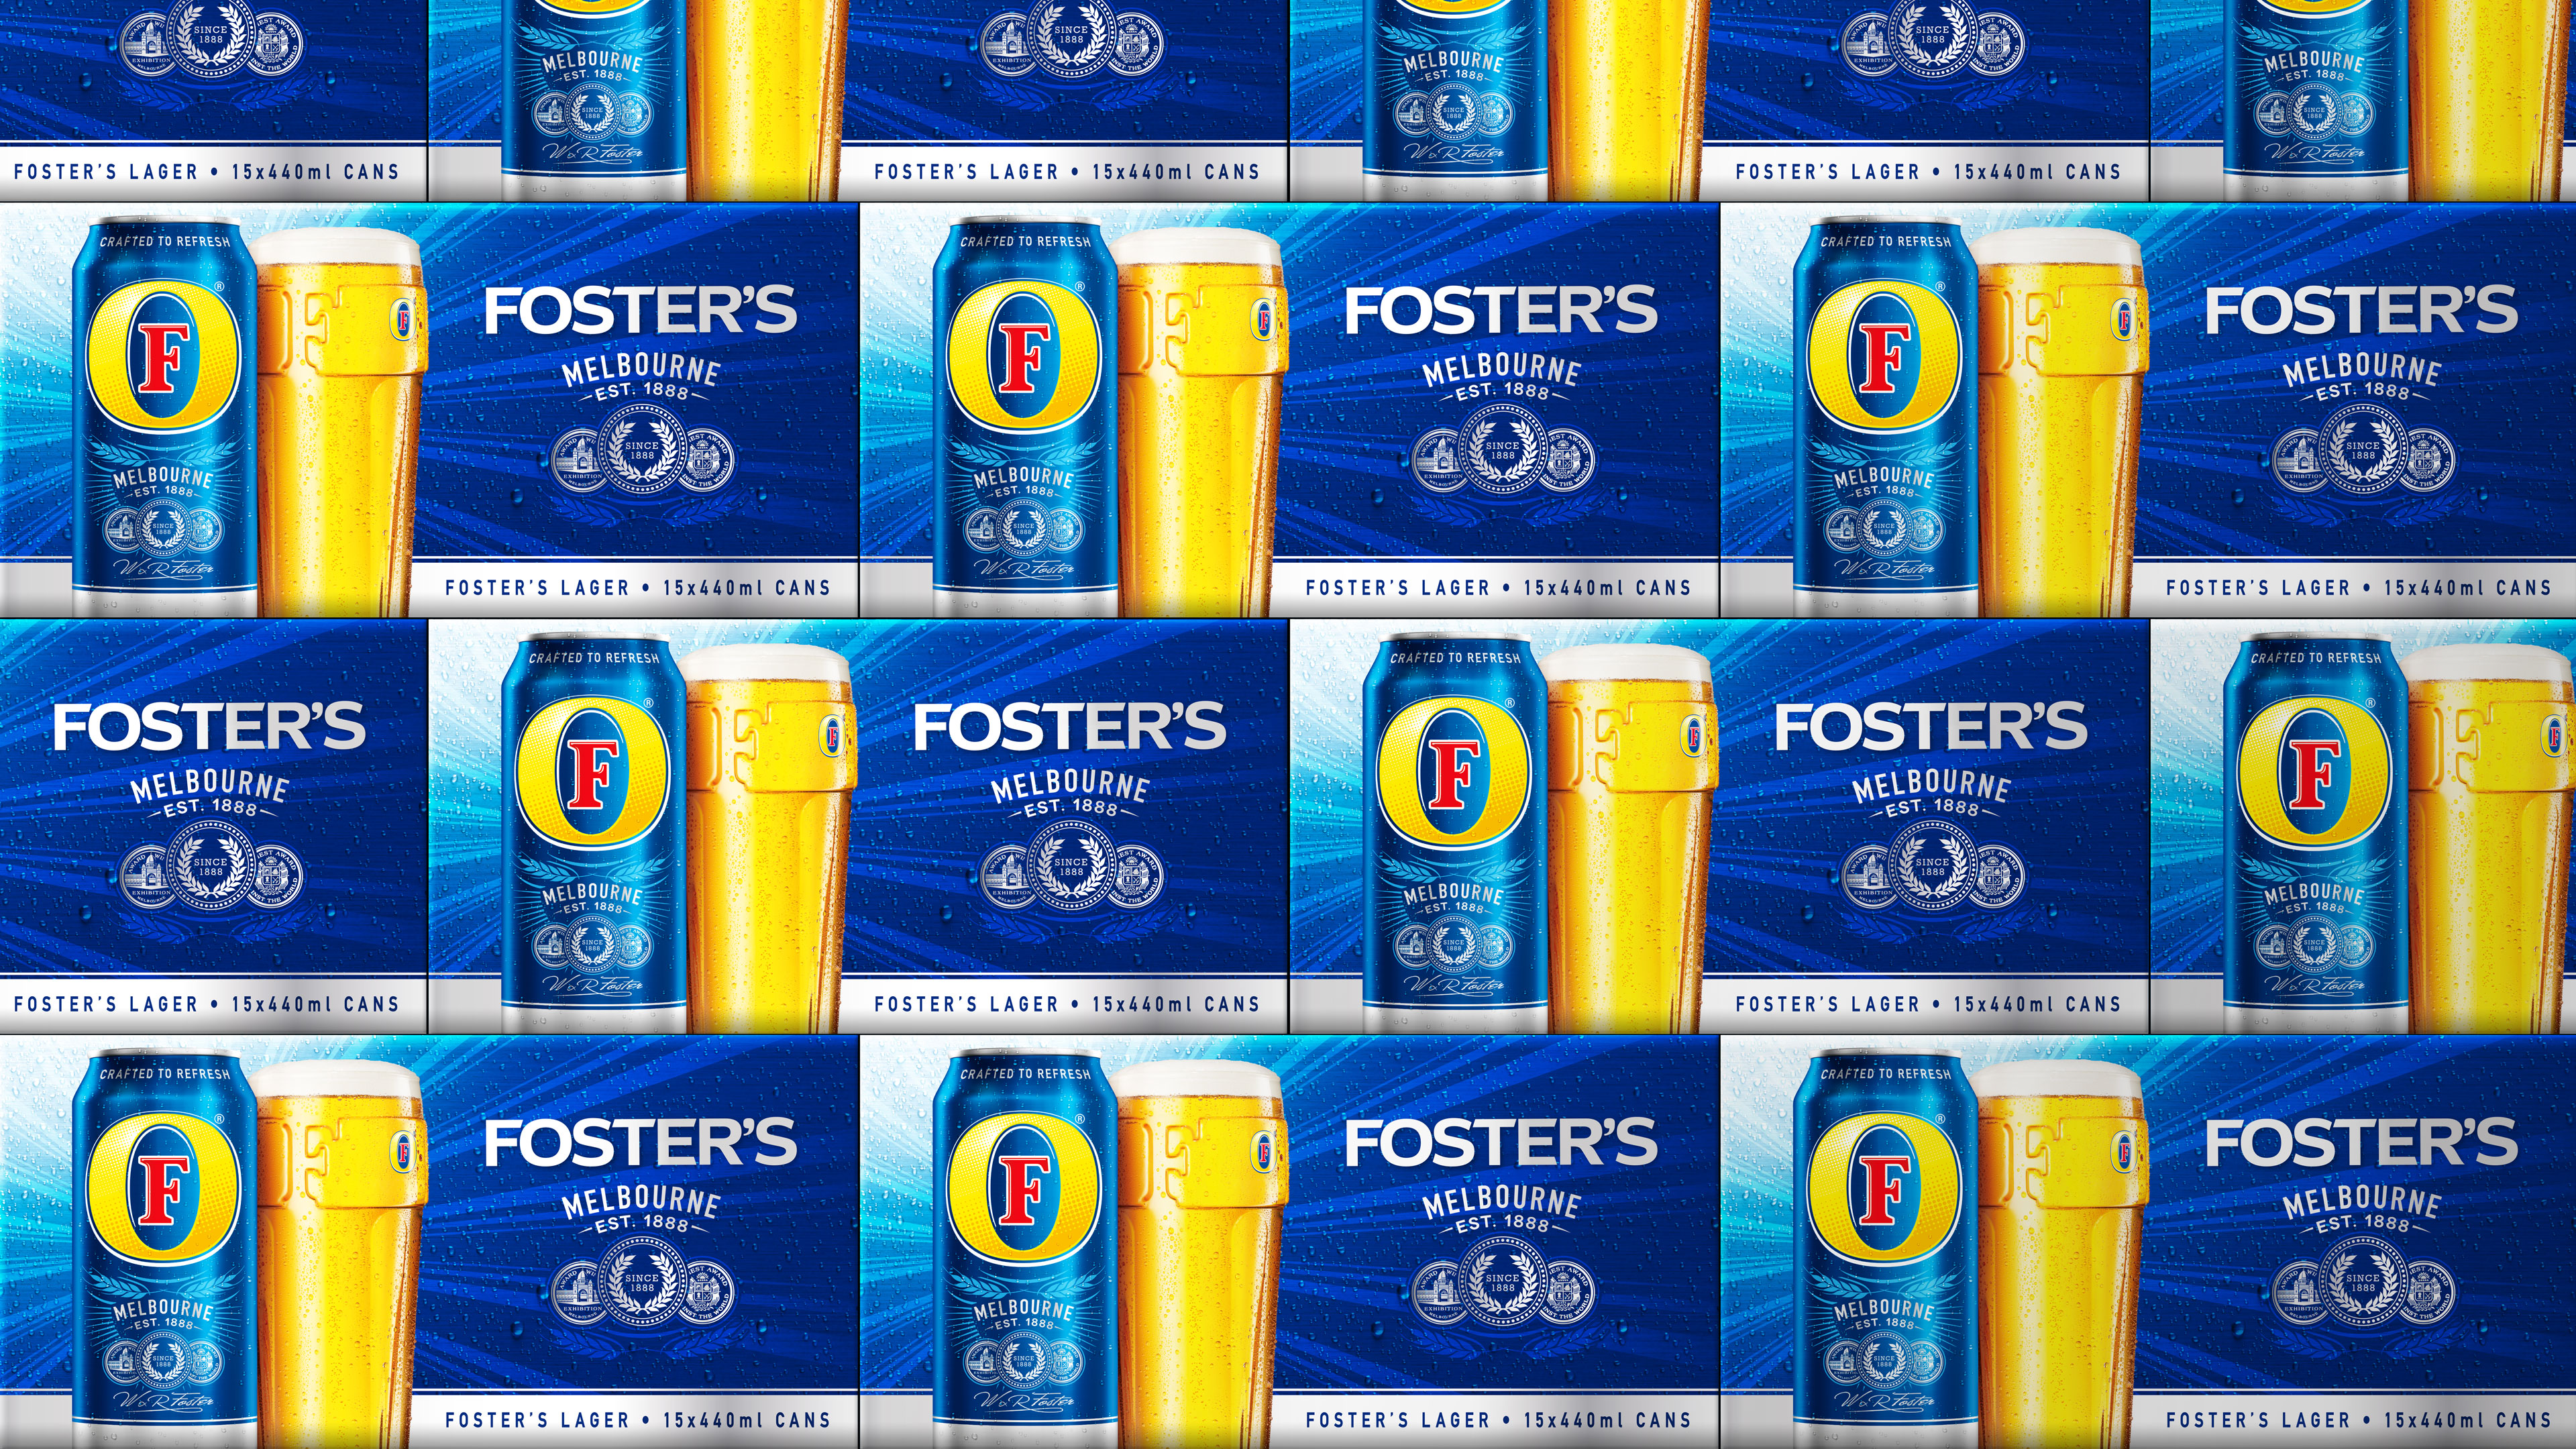 Foster's Multi Pack Packaging Design